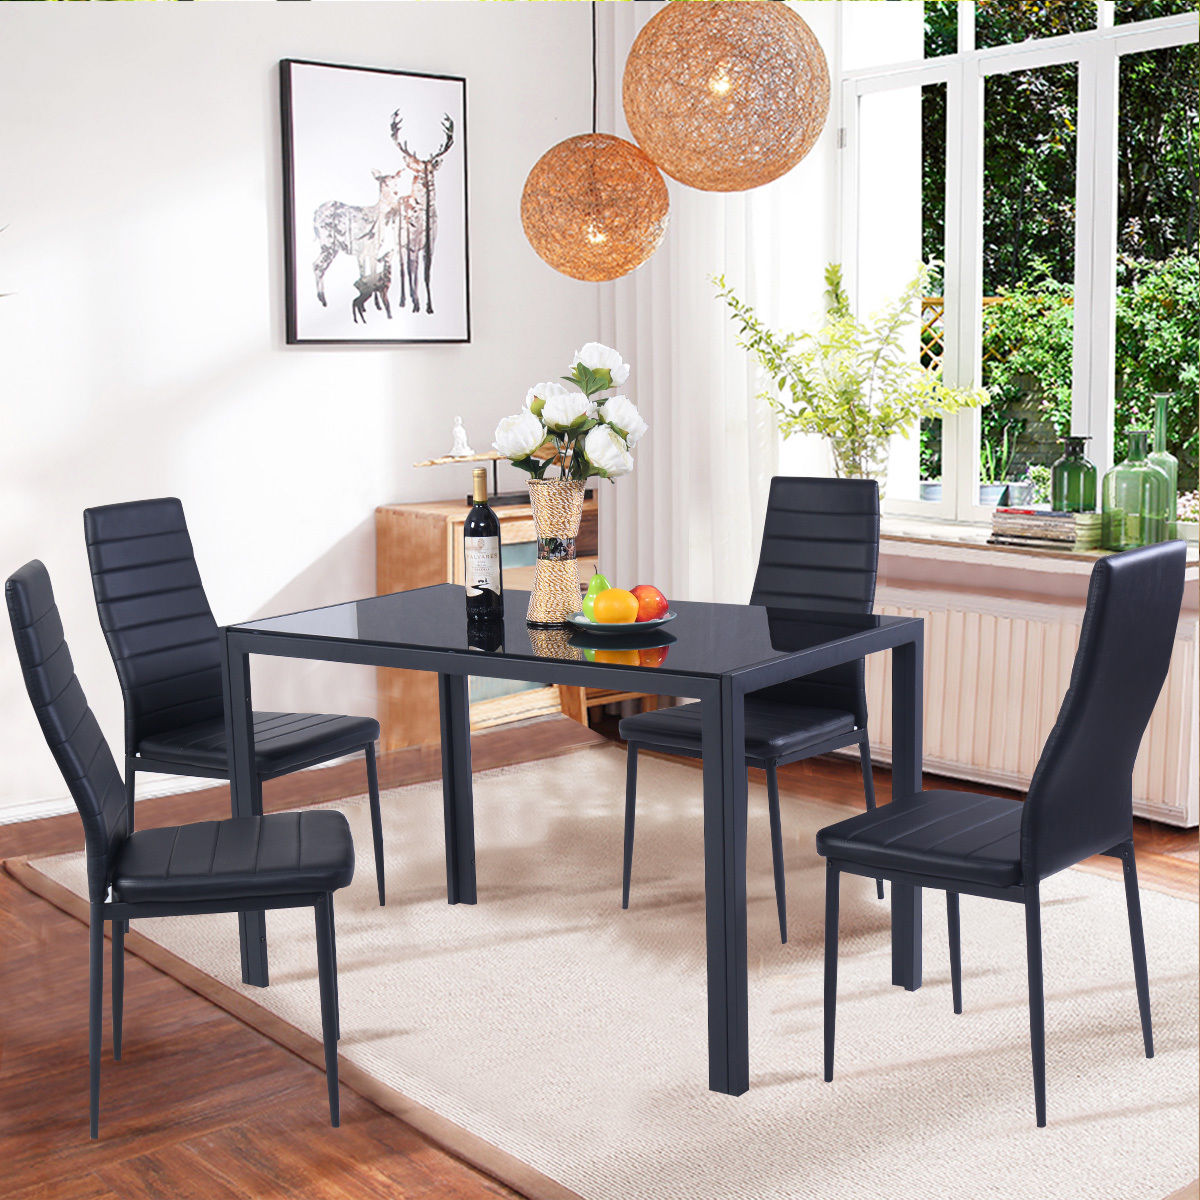 Costway 5 Piece Kitchen Dining Set Glass Metal Table and 4 Chairs Breakfast Furniture - Walmart.com & Costway 5 Piece Kitchen Dining Set Glass Metal Table and 4 Chairs ...